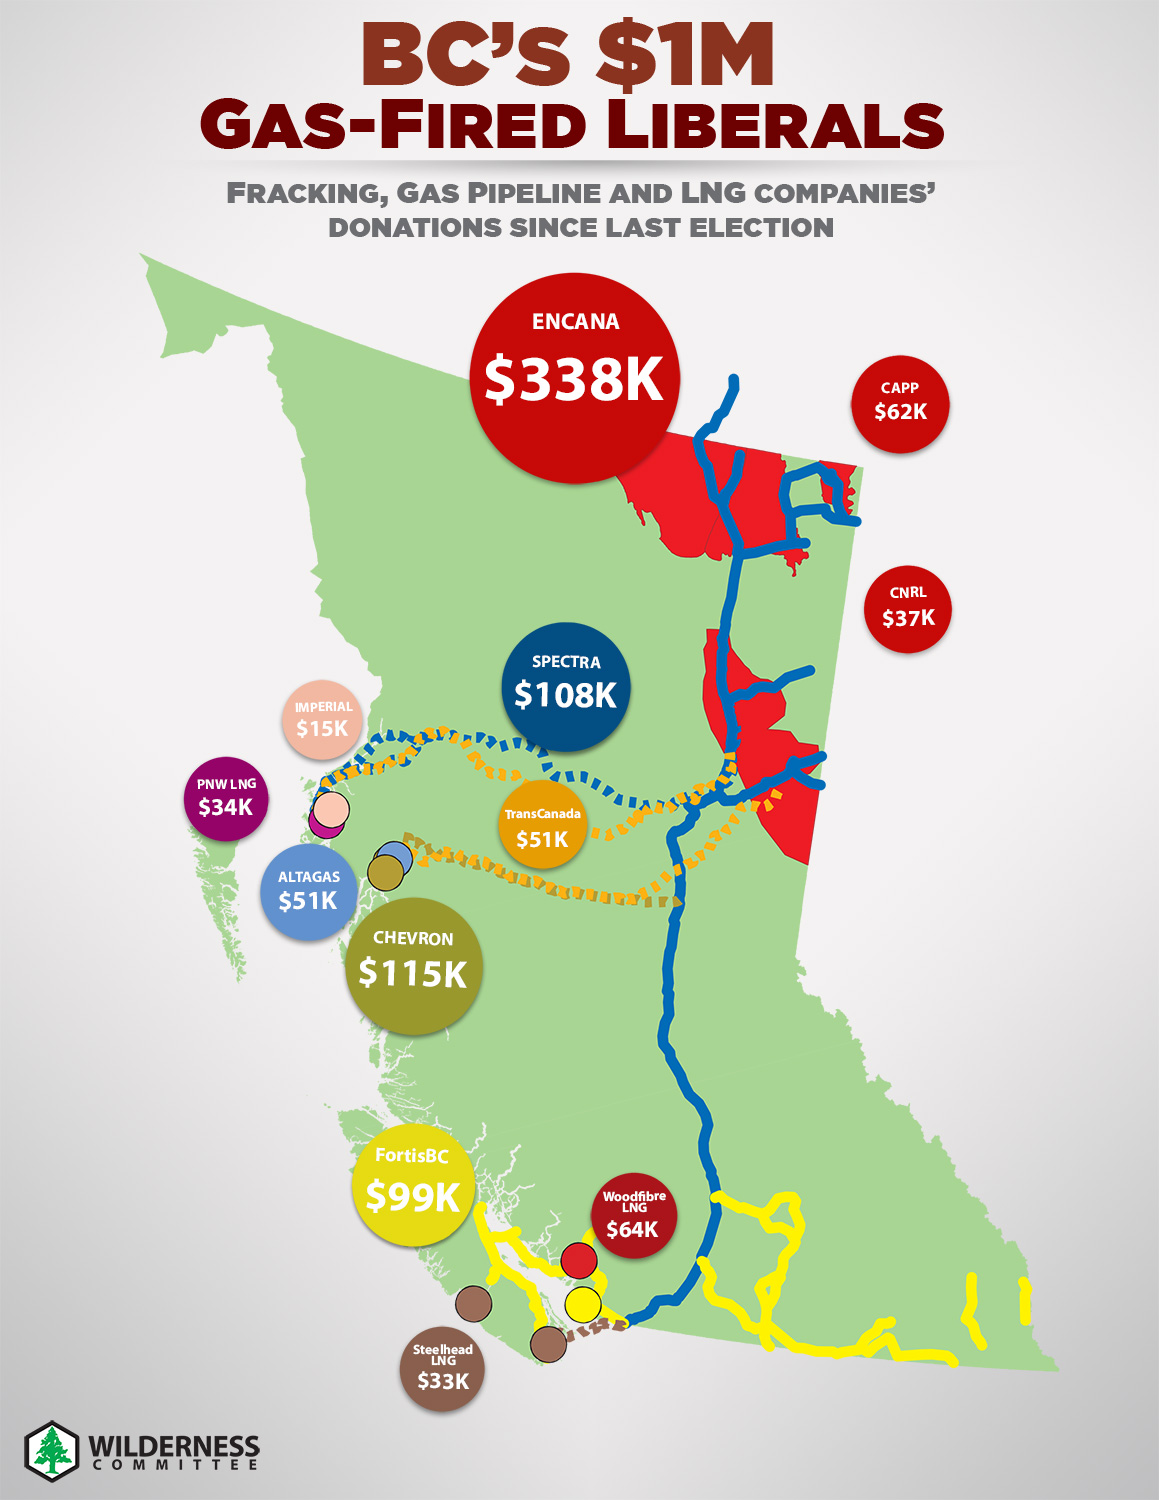 960px version of 'BC's Gas Fired Liberals' infographic